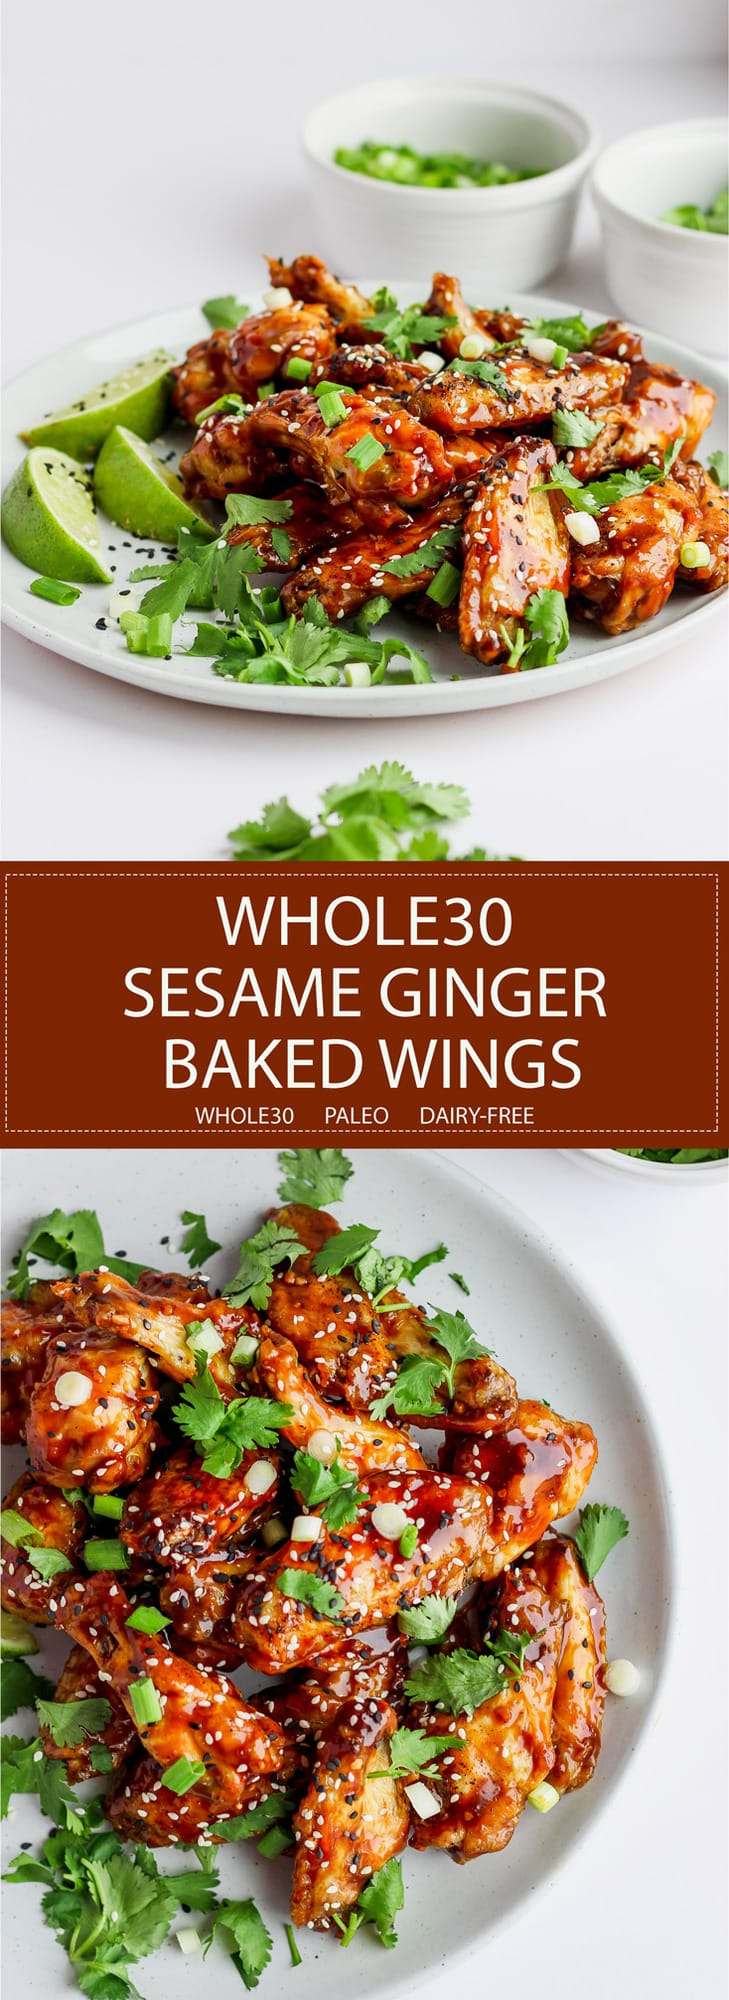 Easy Sesame Ginger Baked Wings - the perfect game day food that Whole30 and Paleo!